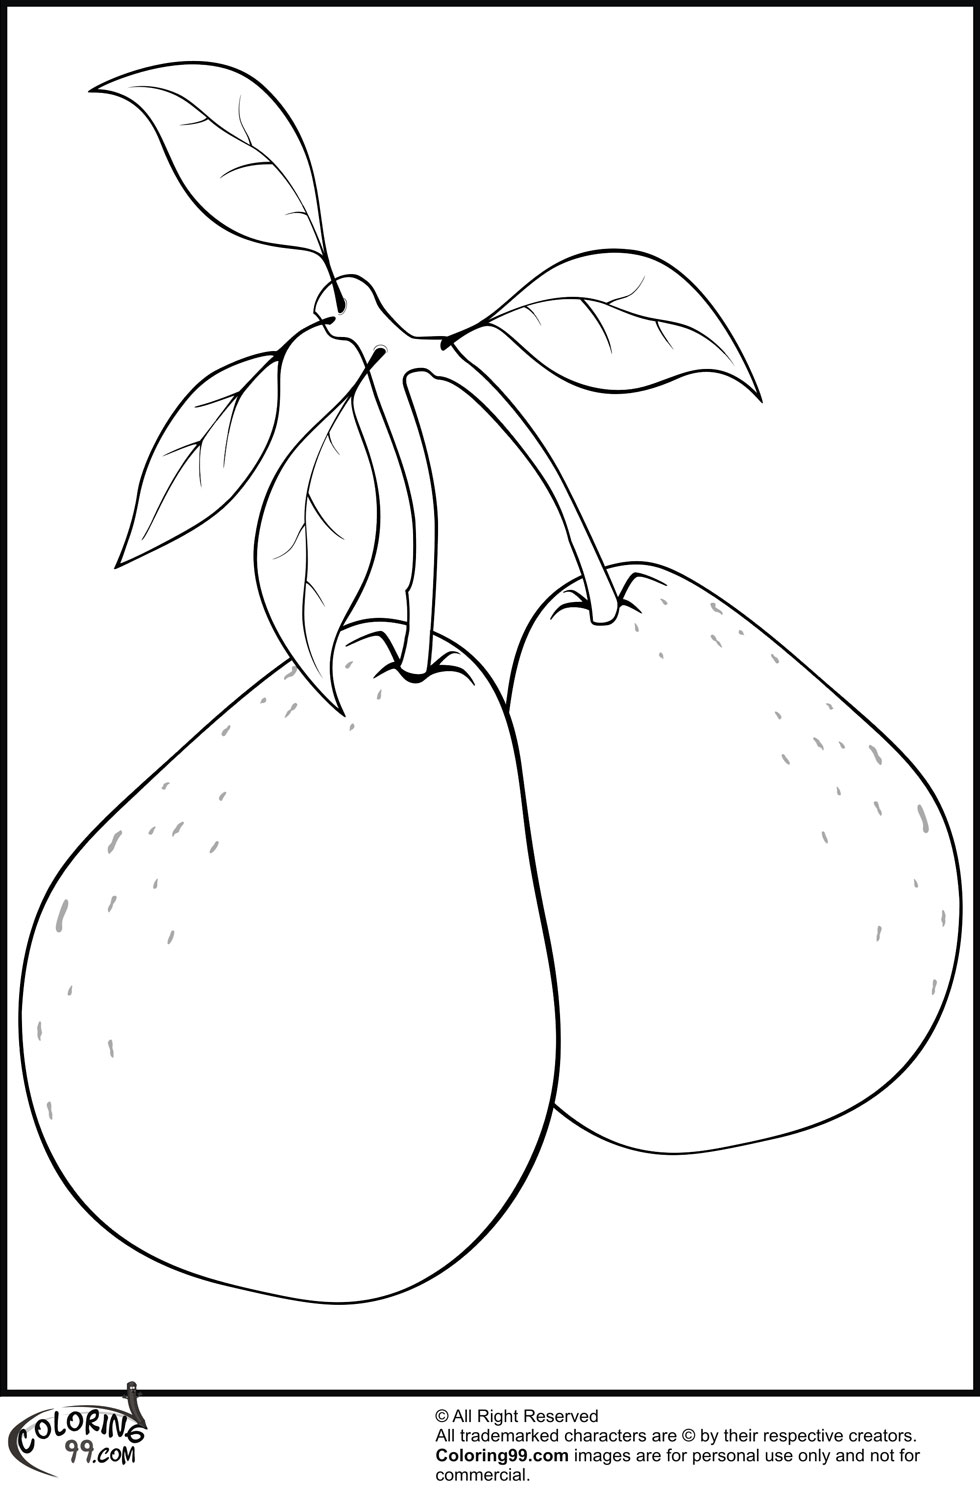 pears coloring pages - photo#34